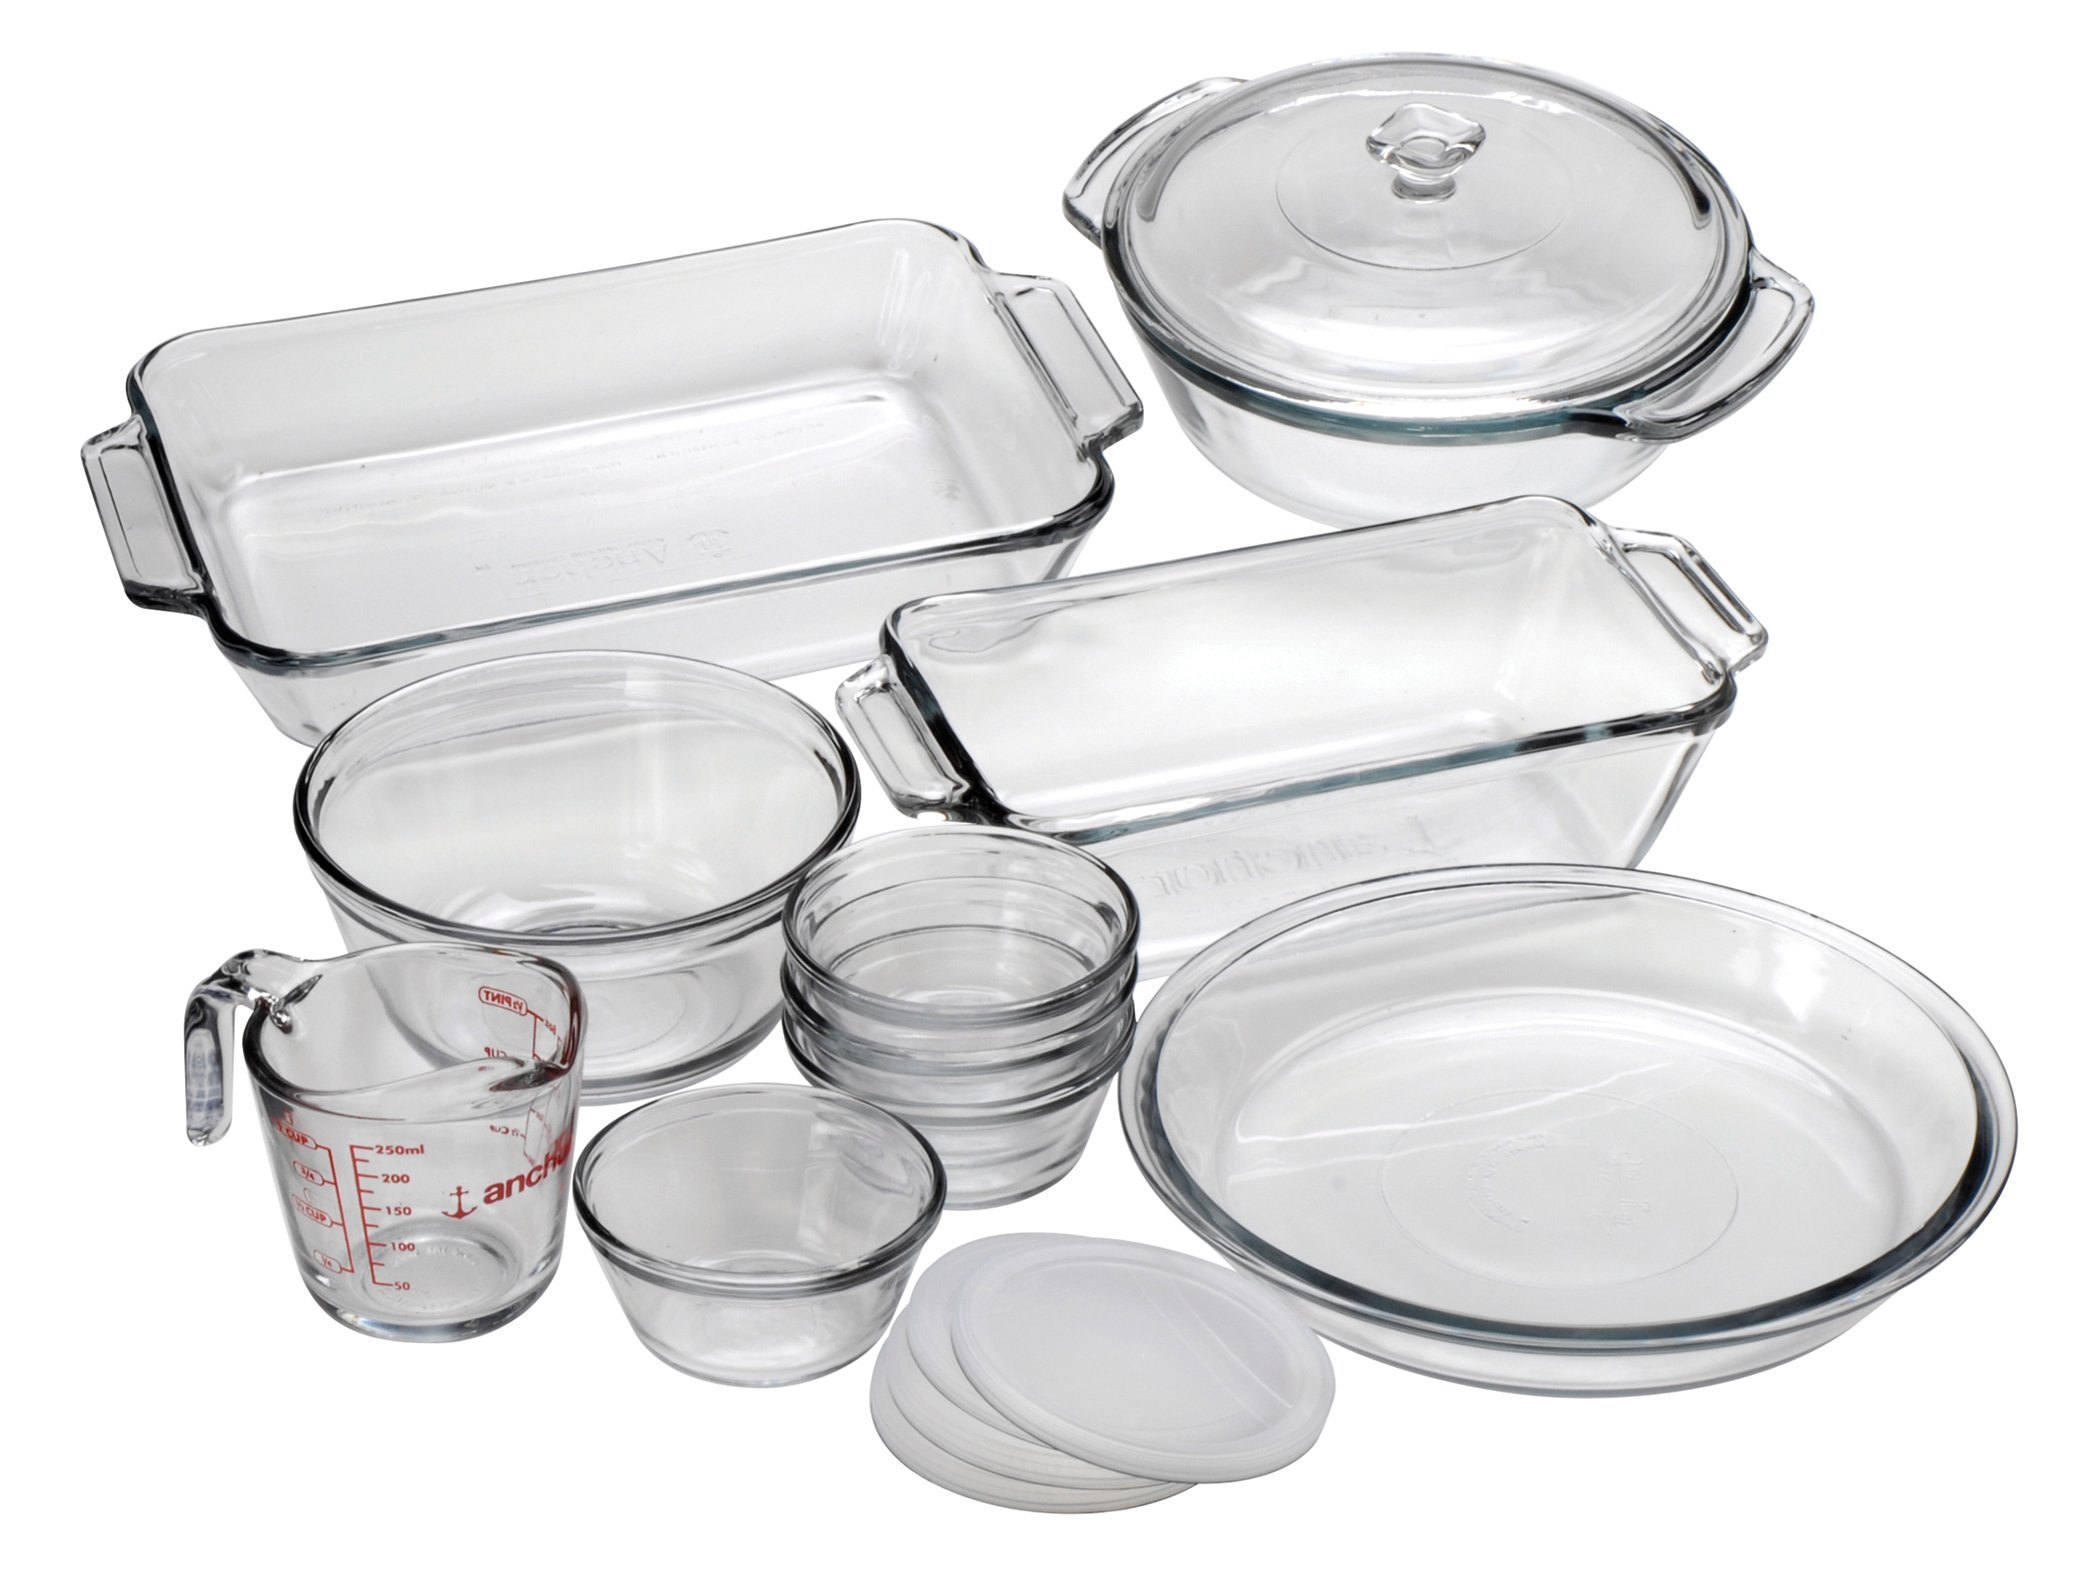 Anchor Hocking Oven Basics 15-Piece Glass Bakeware Set with Casserole Dish, Pie Plate, Measuring Cup, Mixing Bowl, and Custard Cups with Lids by Anchor Hocking